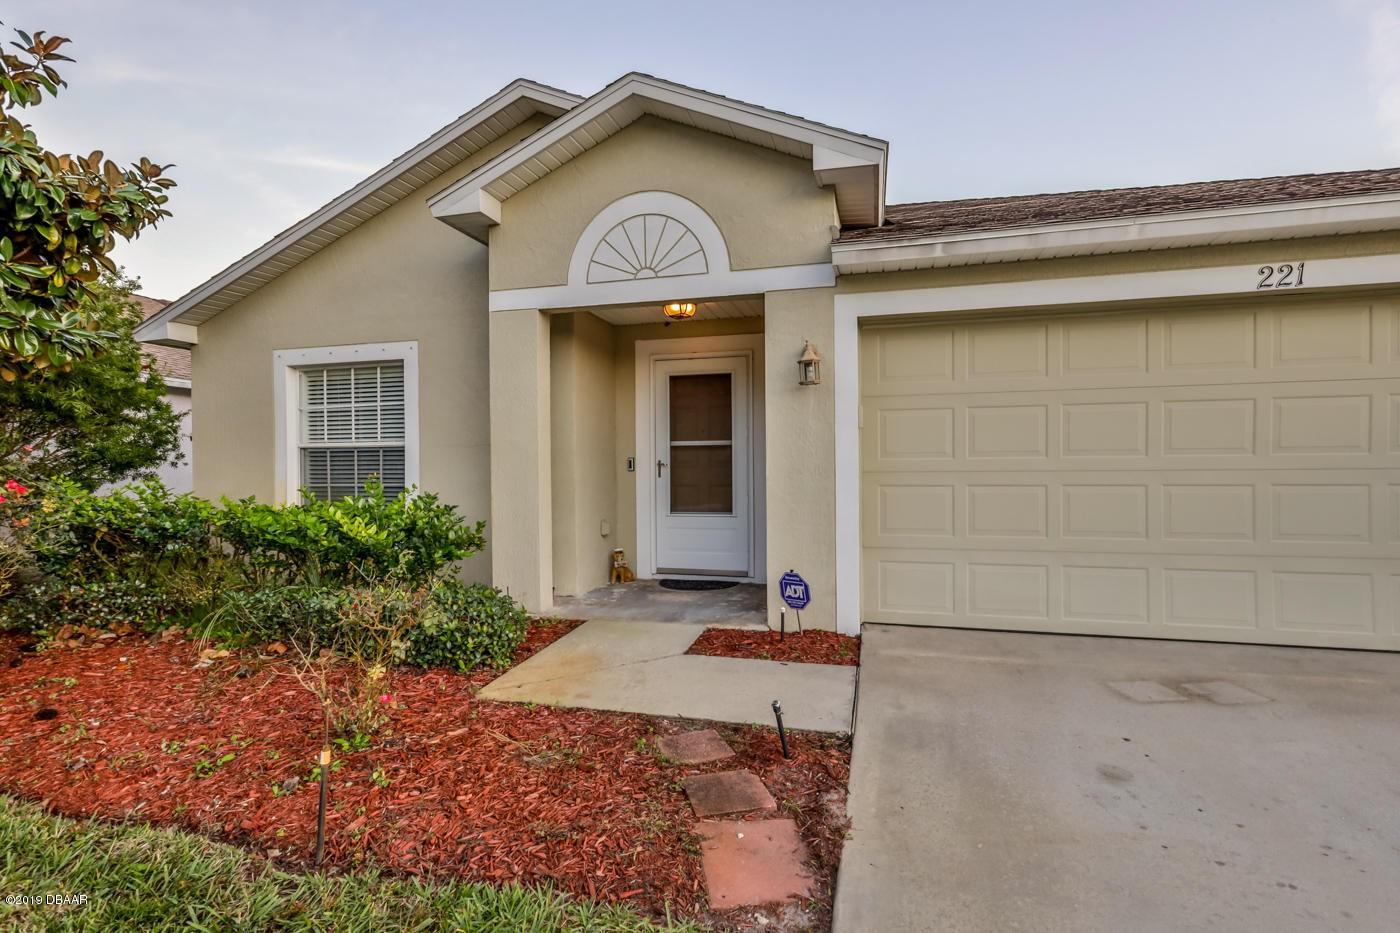 221 Brass Wood Ct, Holly Hill, Florida